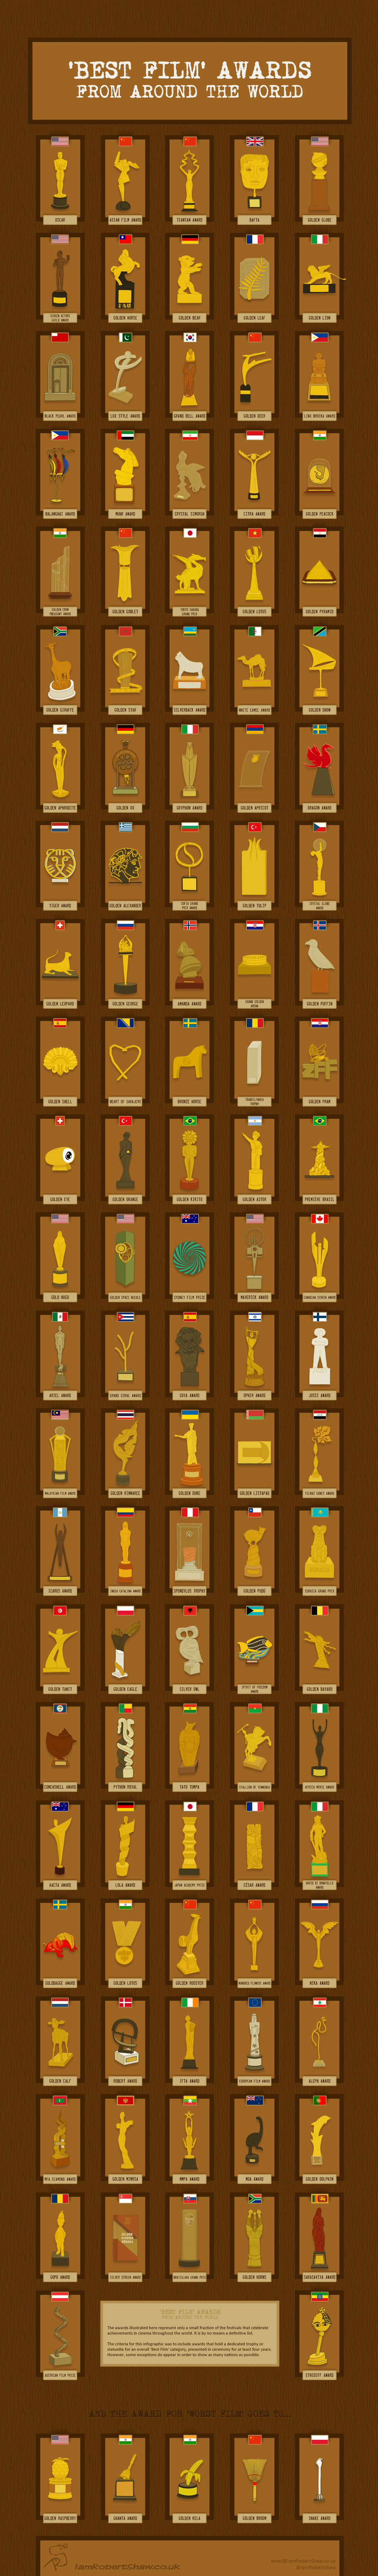 A series of hand drawn illustrations that introduce various film awards.